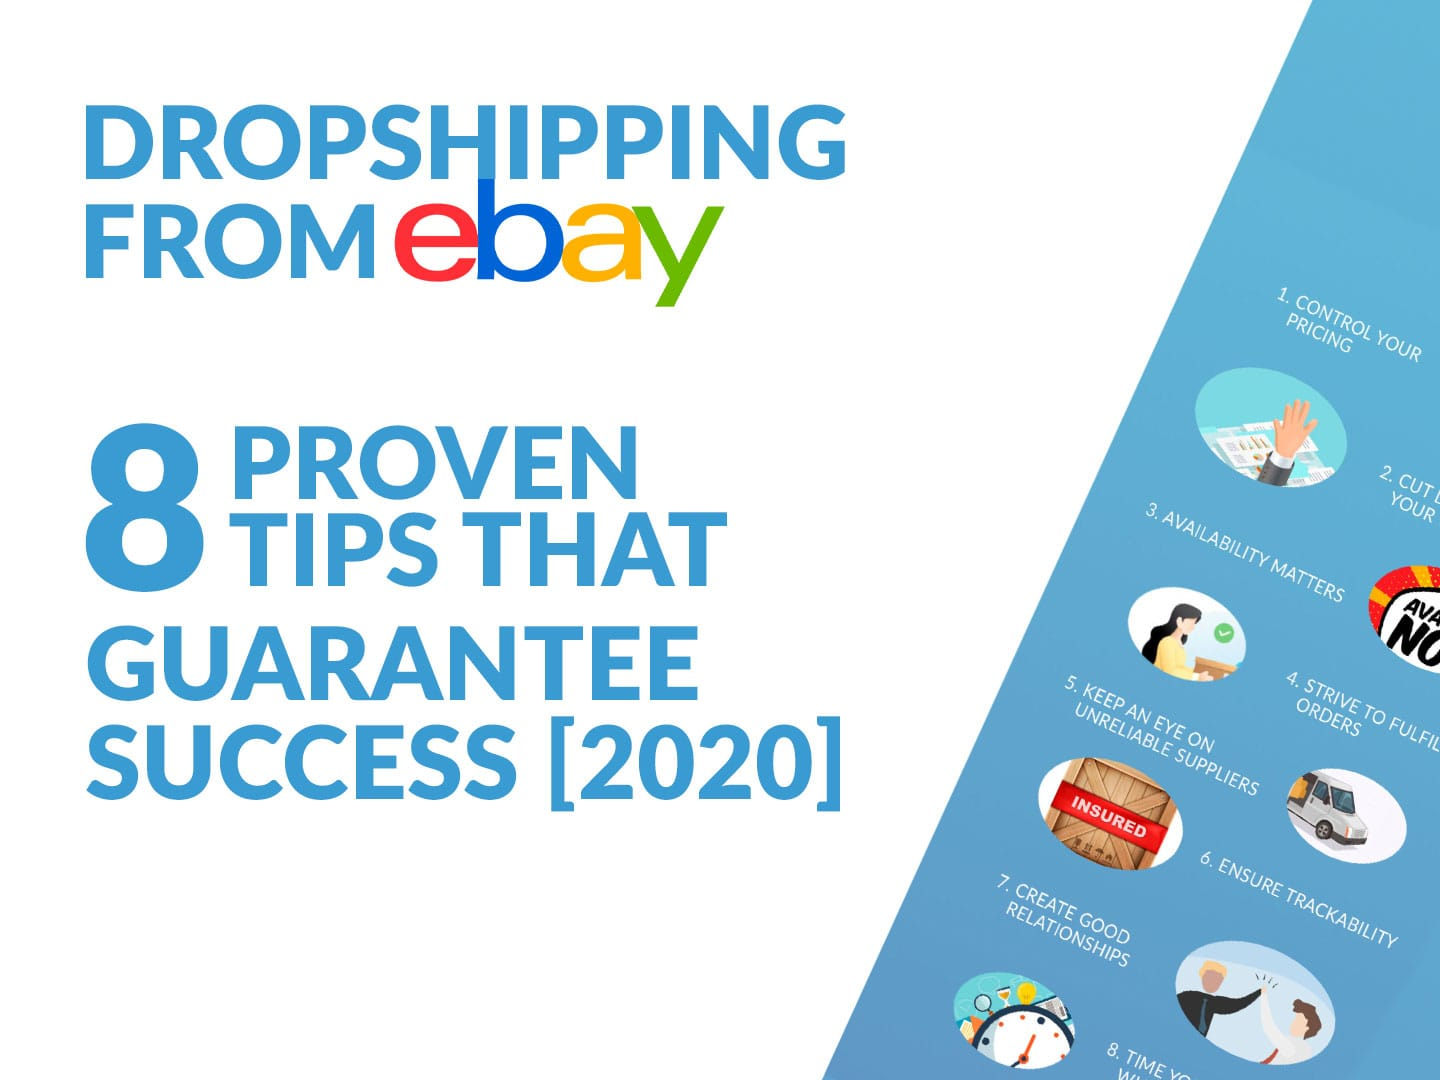 Dropshipping From Ebay 8 Proven Tips That Guarantee Success 2020